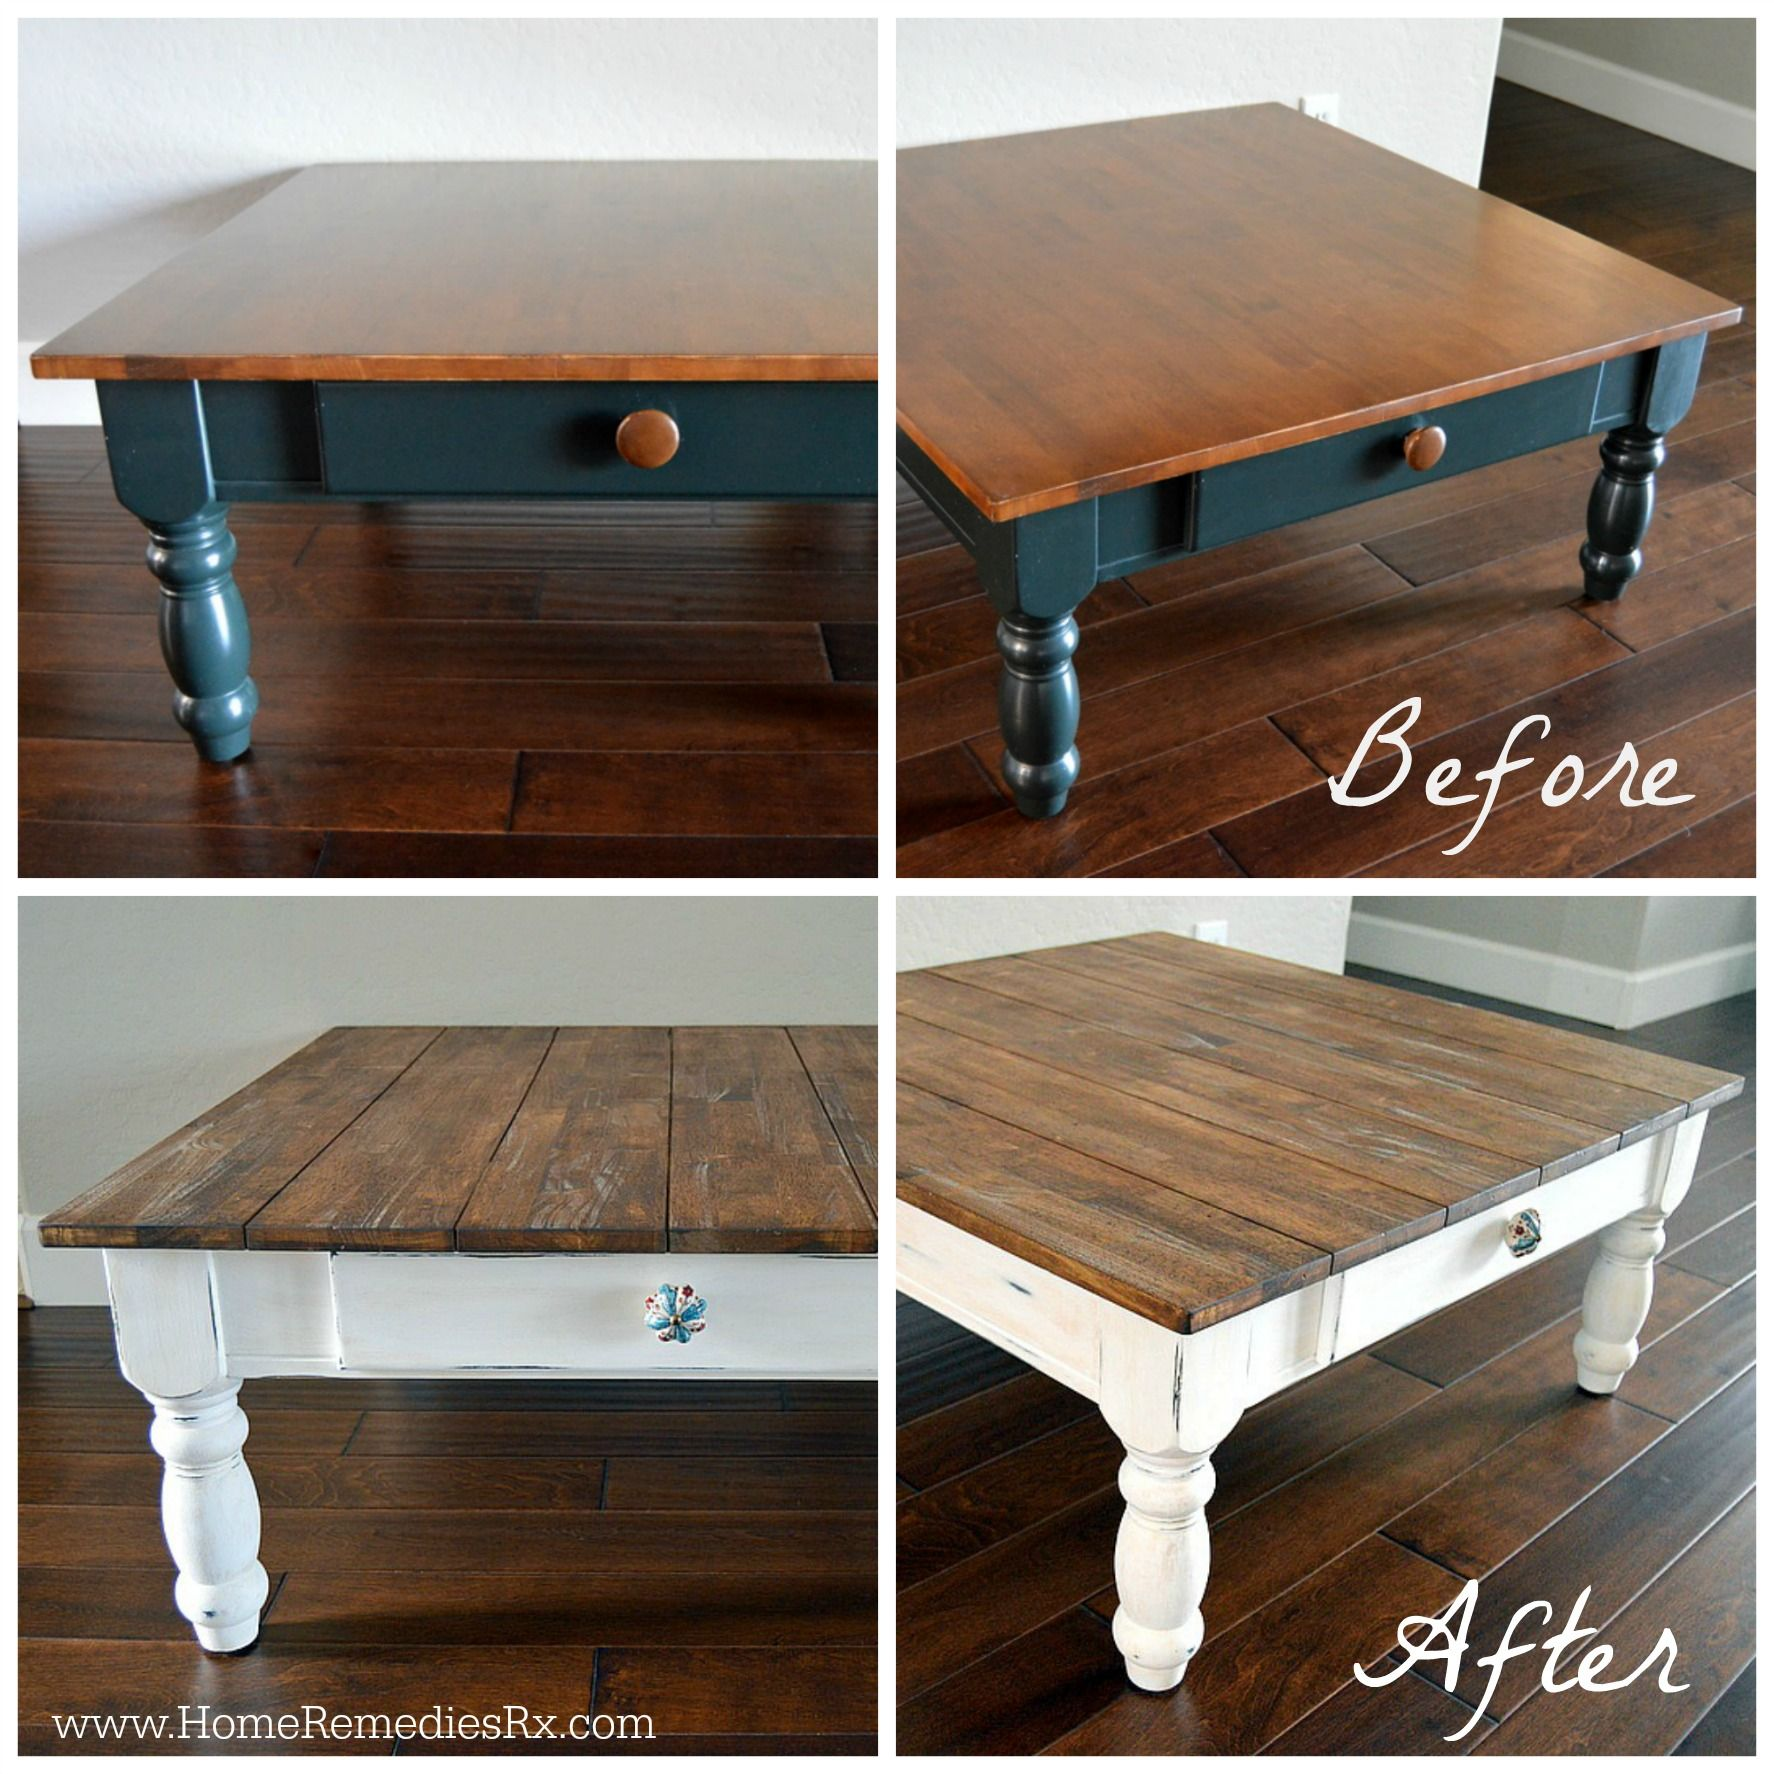 Muebles Restauracion Diy Faux Planked Tabletop For The Home Pinterest